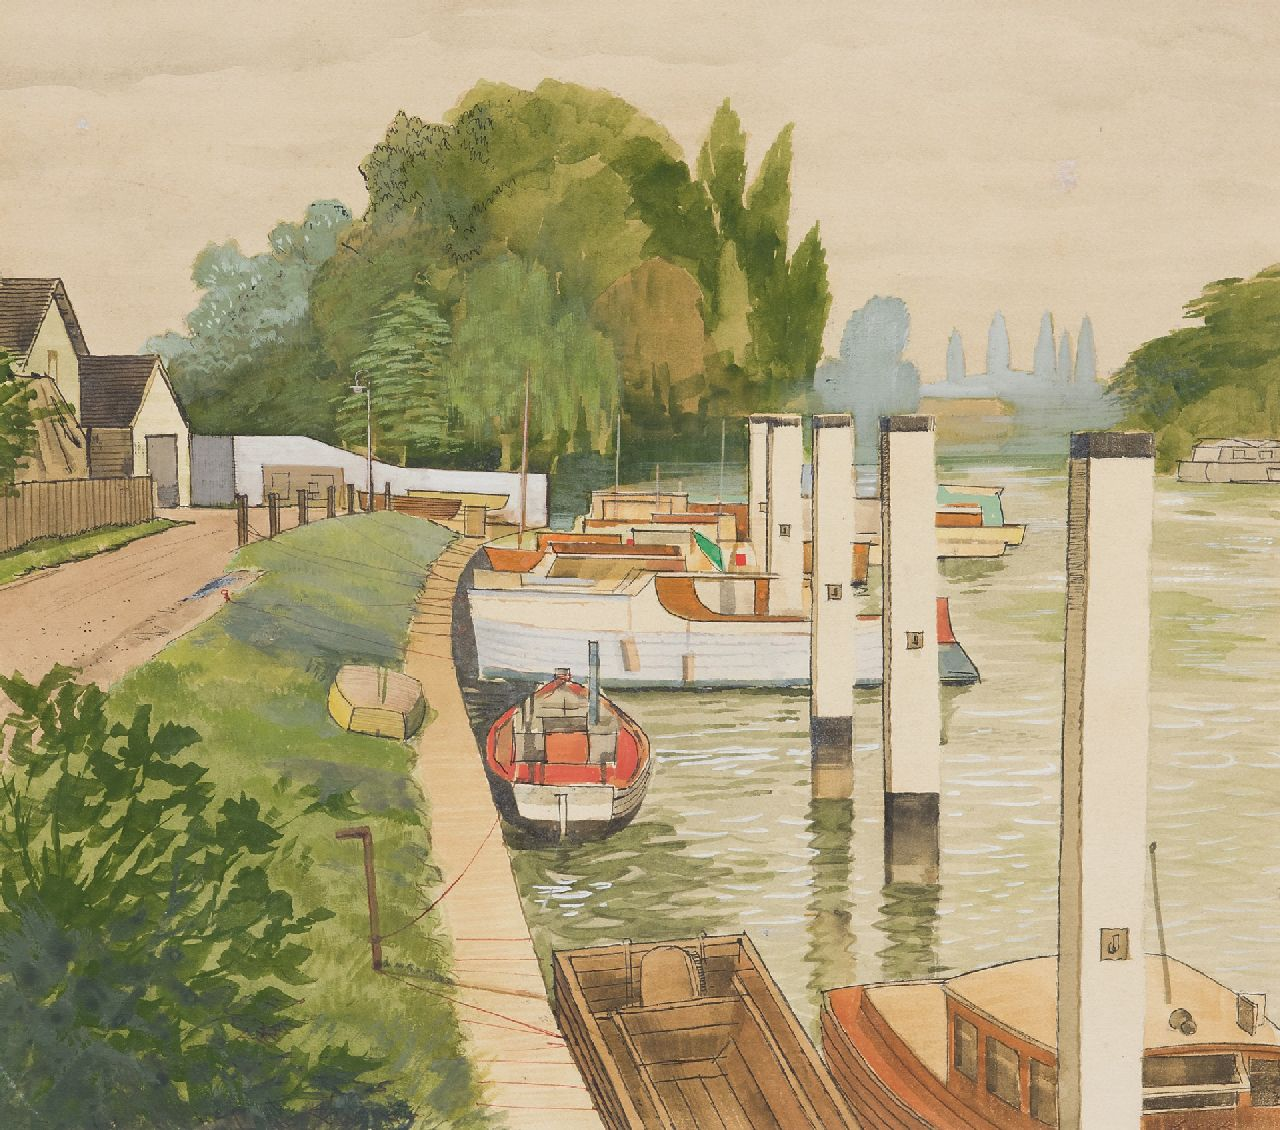 Back R.T.  | Robert Trenaman Back | Watercolours and drawings offered for sale | The 'Shepperton Lock' in the river Thames, watercolour on board 35.4 x 39.9 cm, signed l.r.